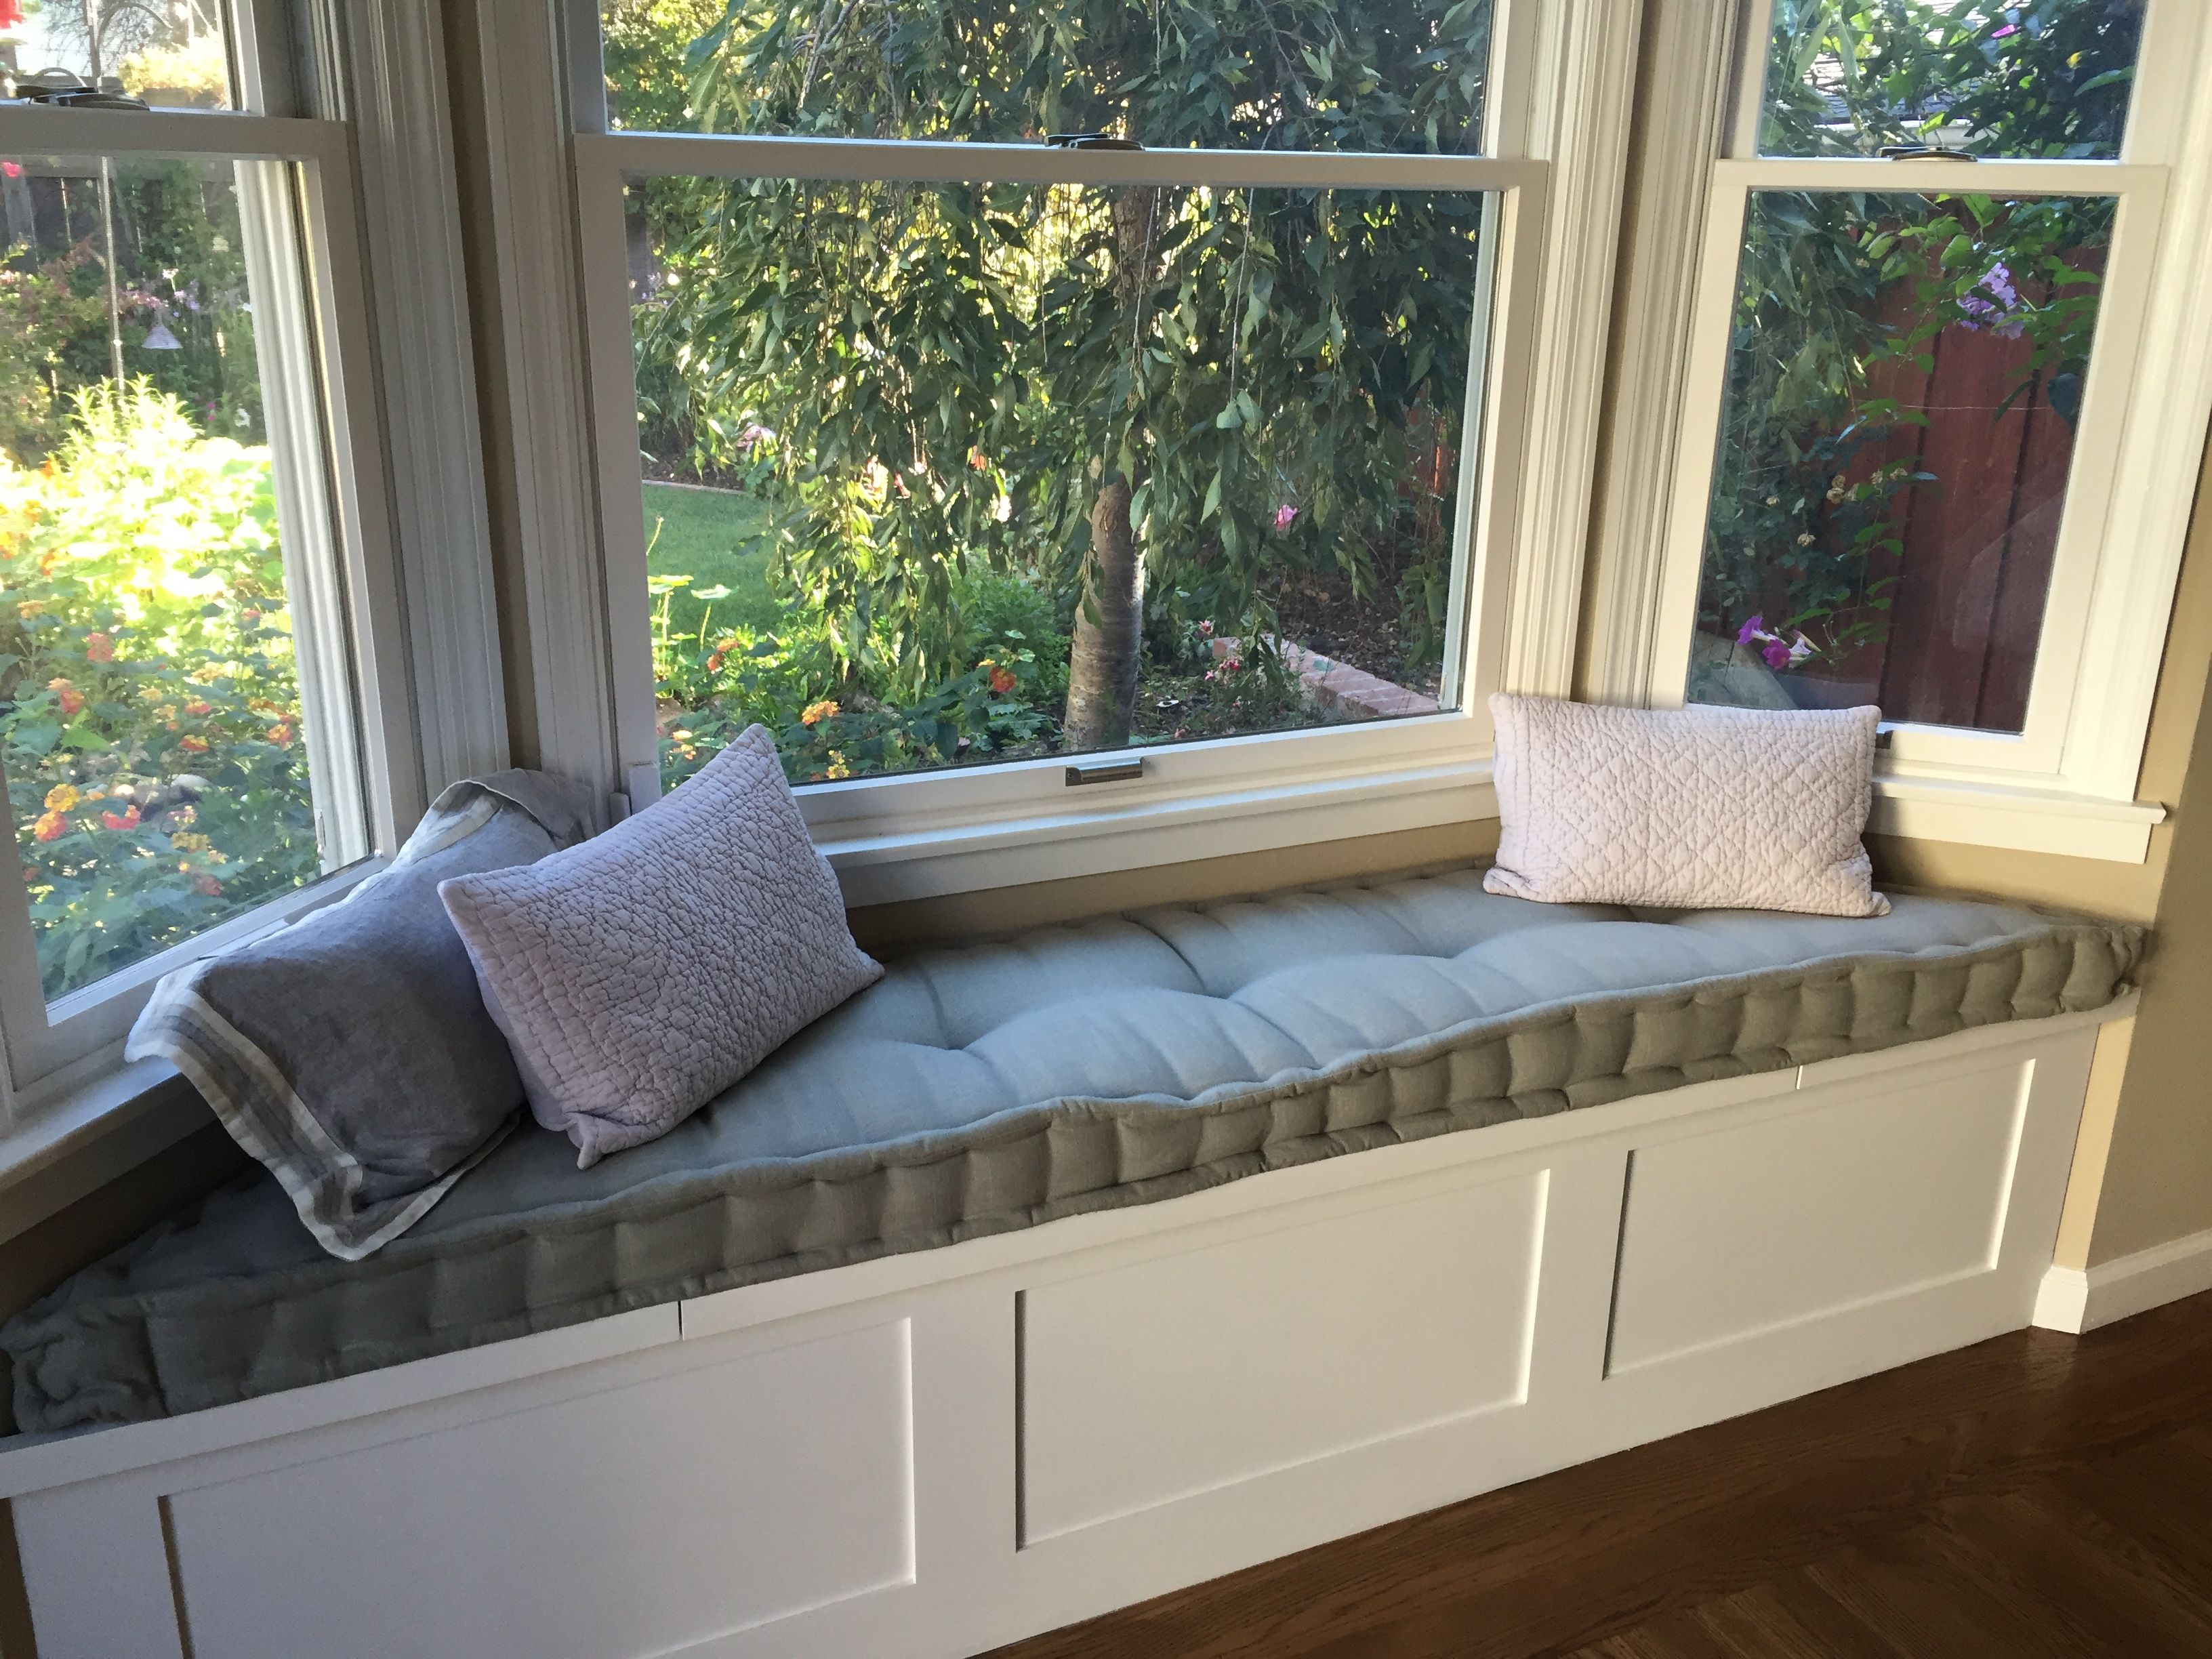 Hand Crafted Custom Tufted Mattress Cushion Window Seat Bench Day Bed By Hearth And Home Custommade